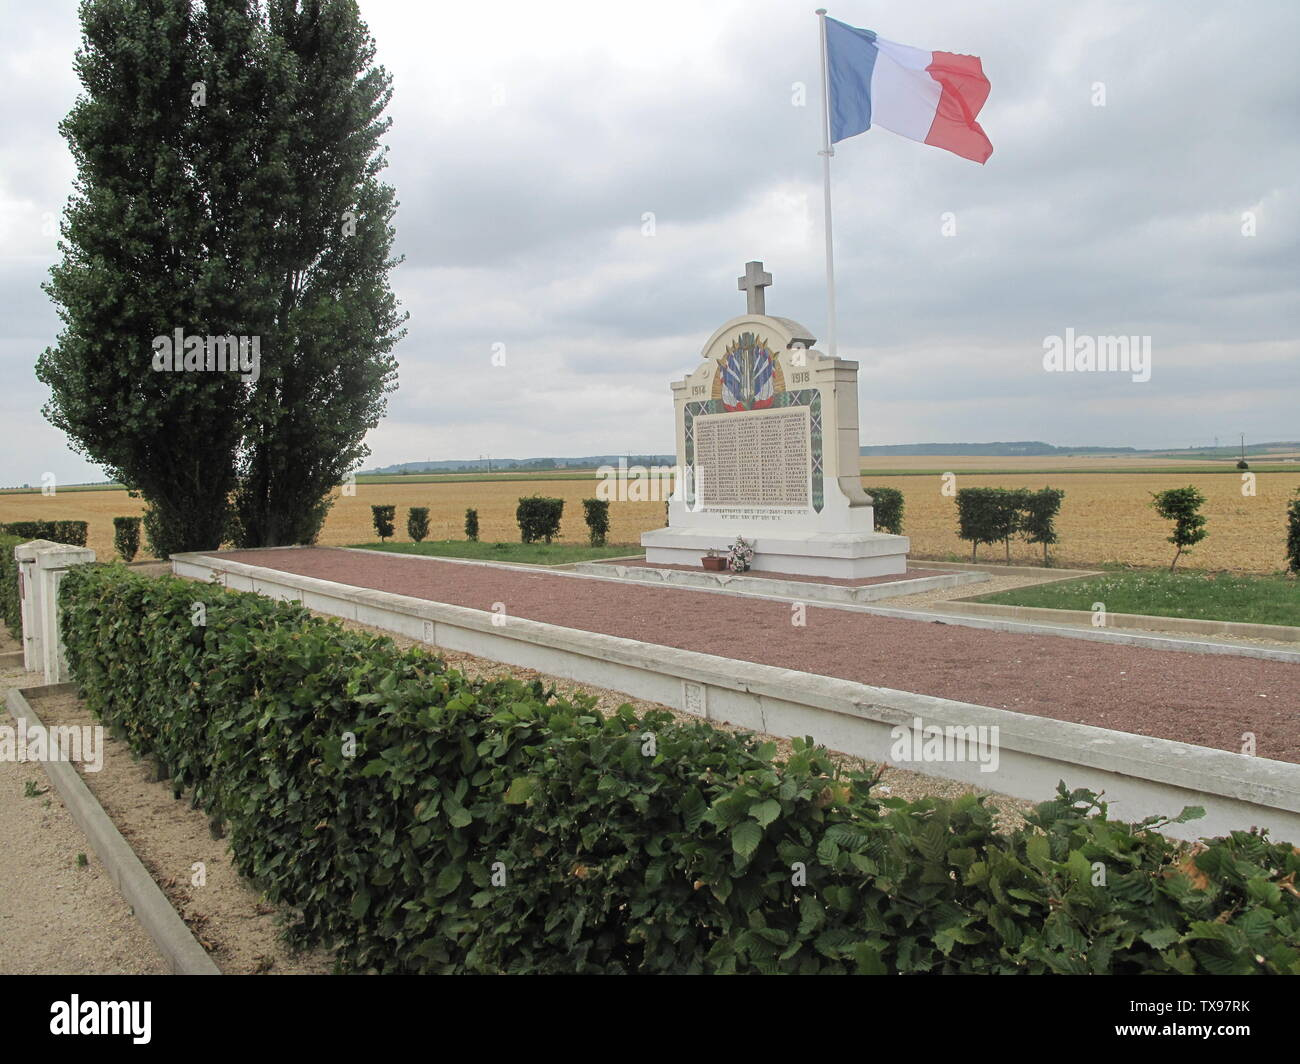 'English: Memorial of Chauconin-Neufmontiers, Seine-et-Marne, France. It contains the remainings of 133 French soldiers fallen here during a counter-attack in september 1914, at the beginning of the WWI. Among them, their leutnant, the French writer Charles Péguy 1873-1914) Français: Memorial de Chauconin-Neufmontiers en Seine-et-Marne. Il contient les restes de 133 soldats tombés à cet endroit lors d'une contre-offensive de septembre 1914. Parmi eux, leur lieutenant, Charles Péguy (1873-1914).; 25 July 2010; Own work; Tangopaso; ' - Stock Image